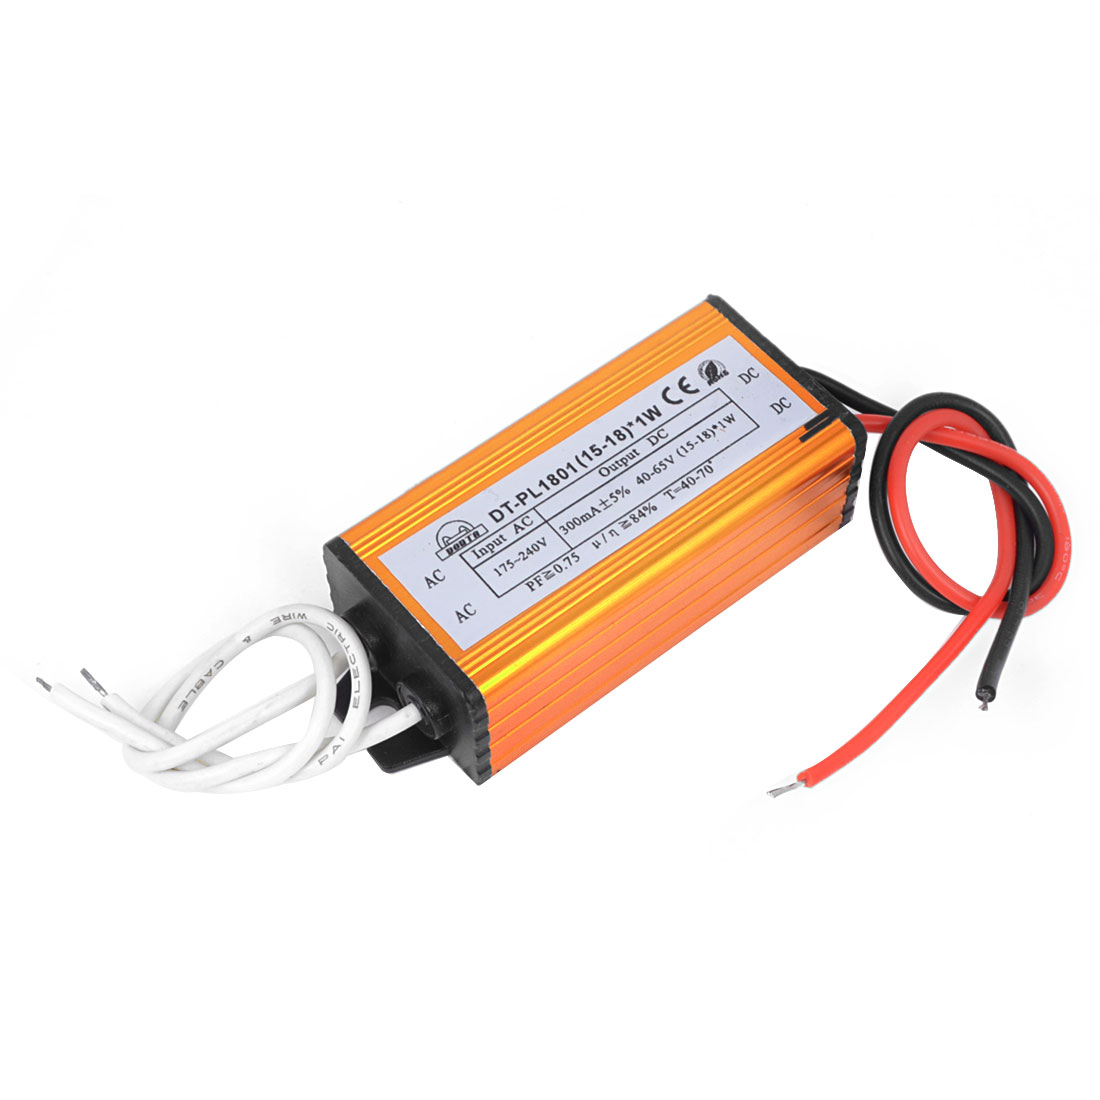 AC 175-240V to DC 40-65V Waterproof LED Constant Current Driver (15-18)x1W